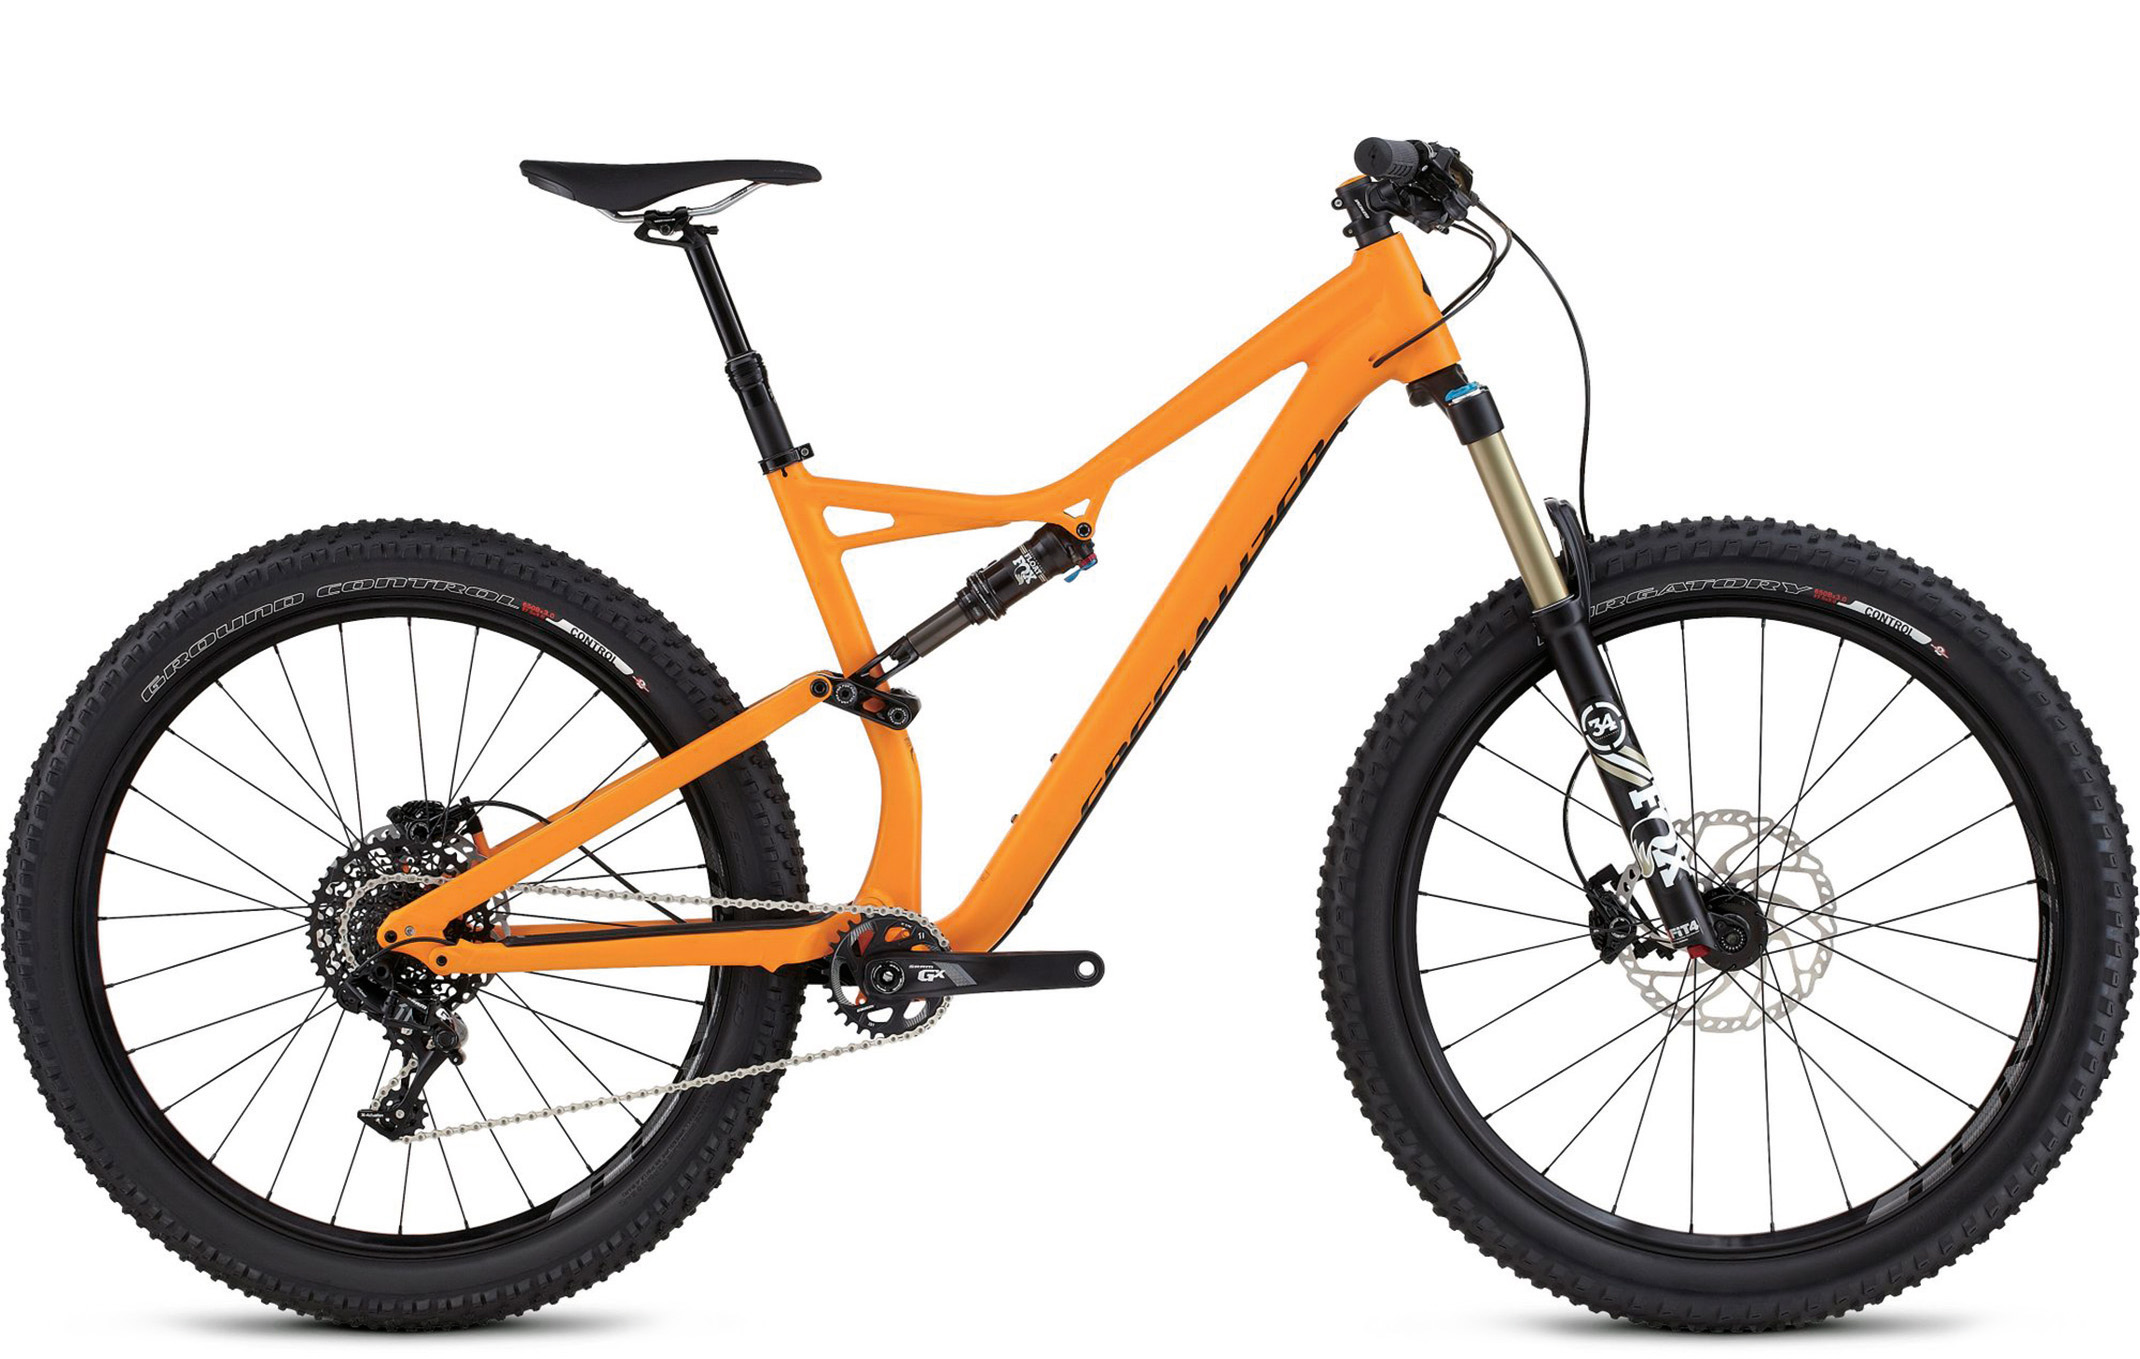 ad528f9c9a6 Specialized Stumpjumper FSR Comp 6Fattie (2016) review - MBR